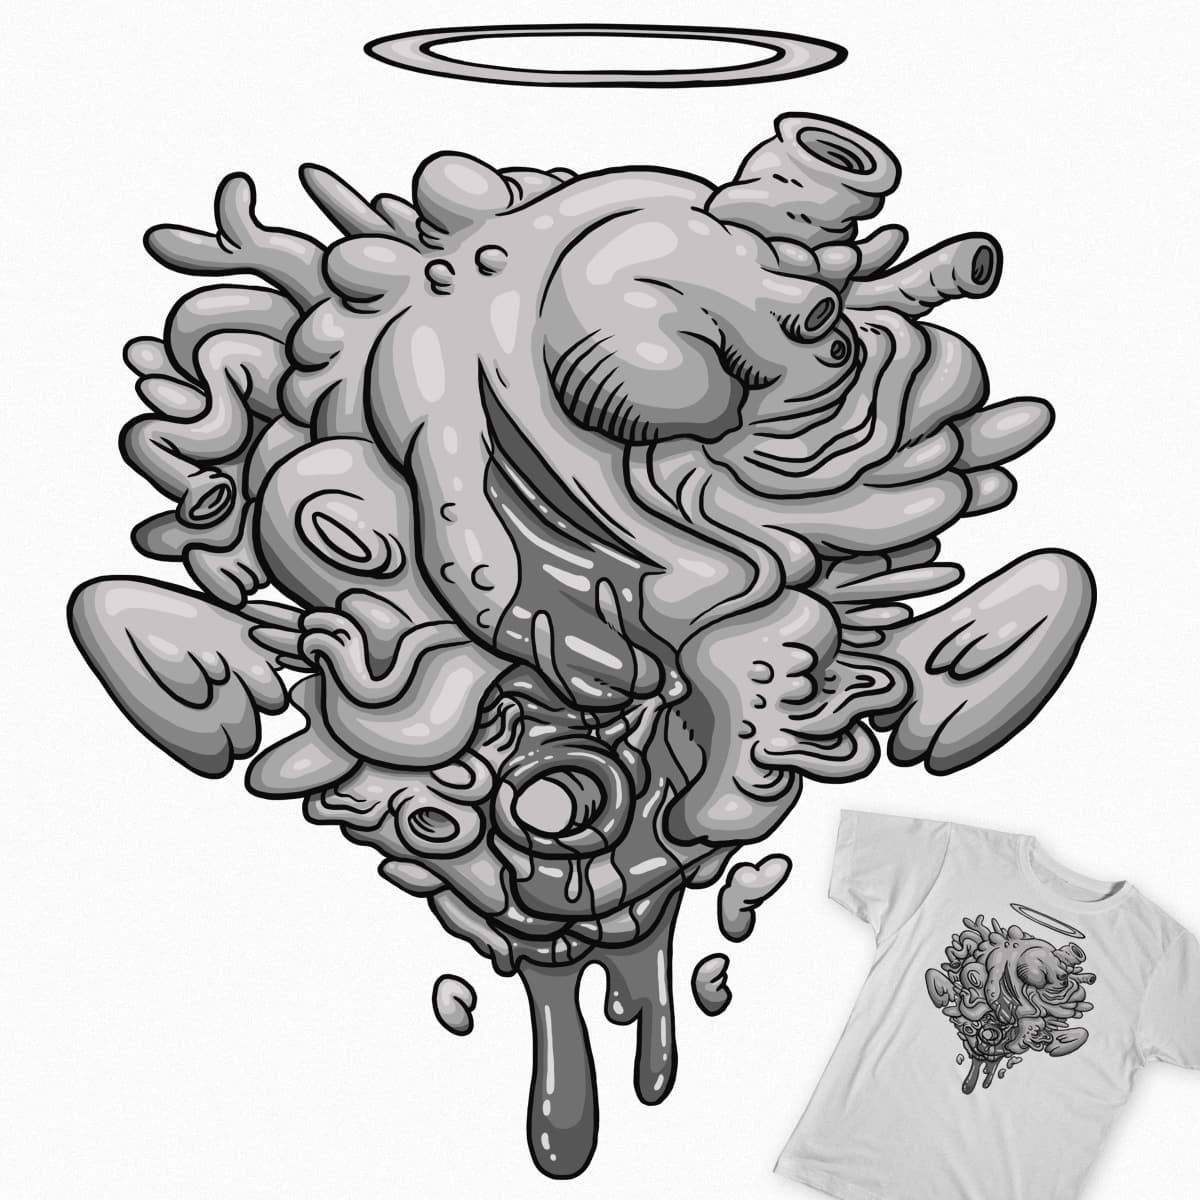 HEART by PhilipMcVann on Threadless